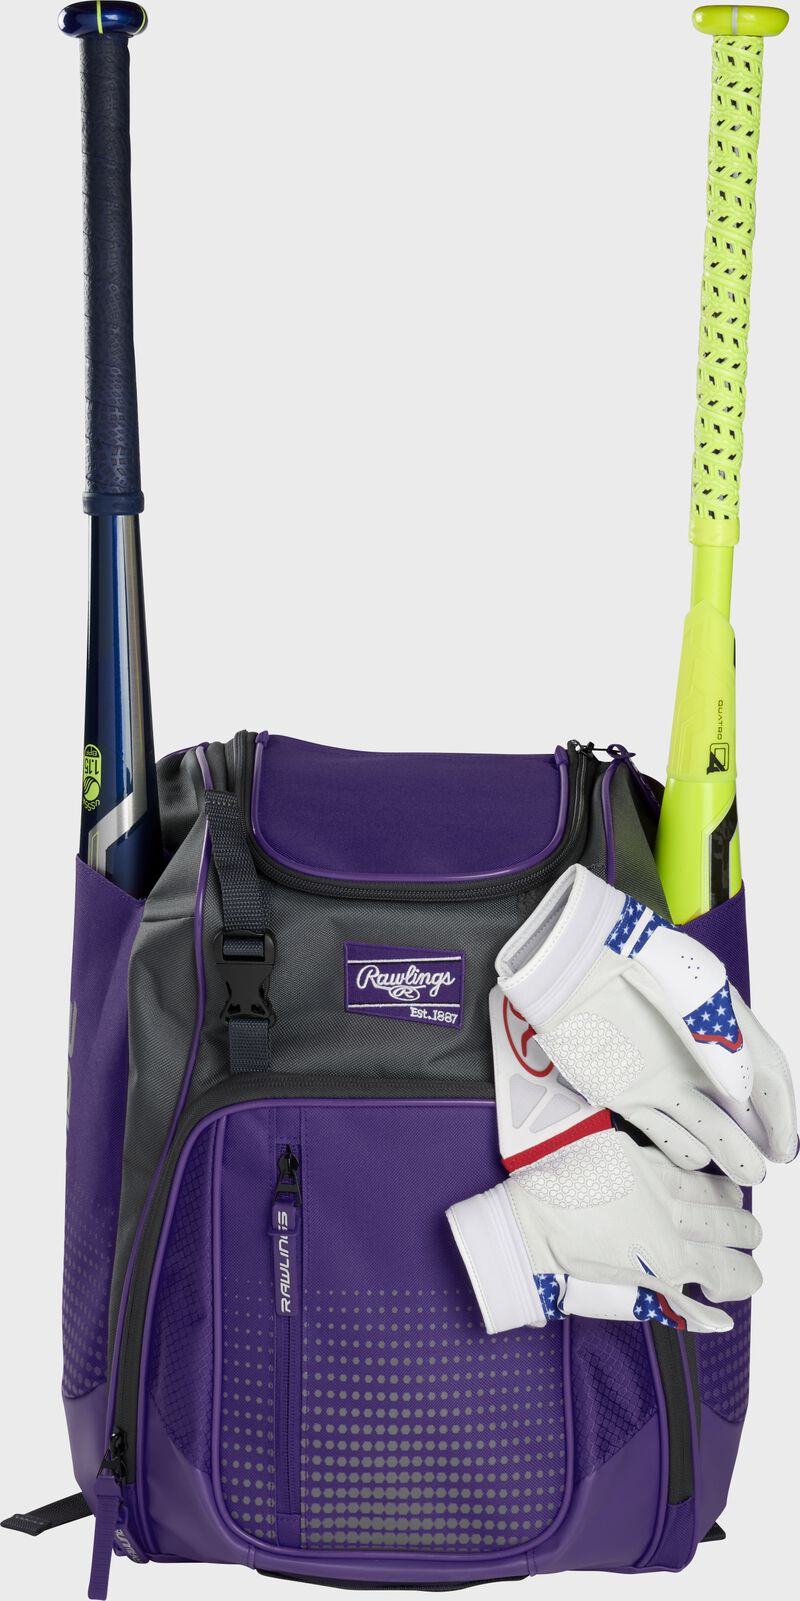 A purple Franchise backpack with two bats in the sides and batting gloves on the front Velcro strap - SKU: FRANBP-PU